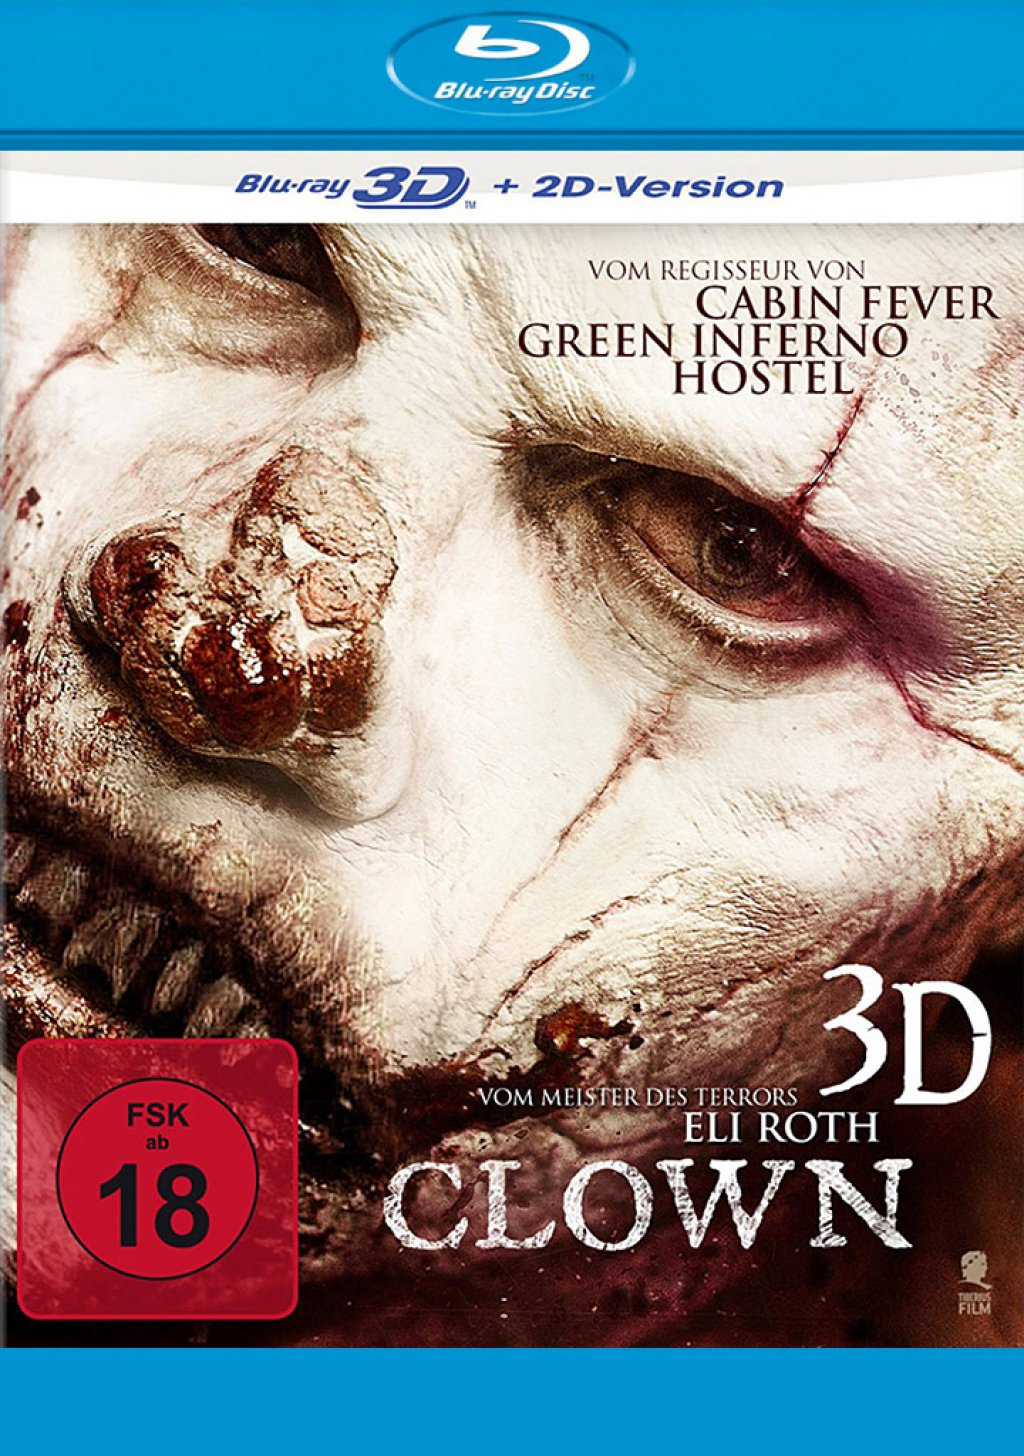 Clown 3D - Blu-ray 3D + 2D (Blu-ray)